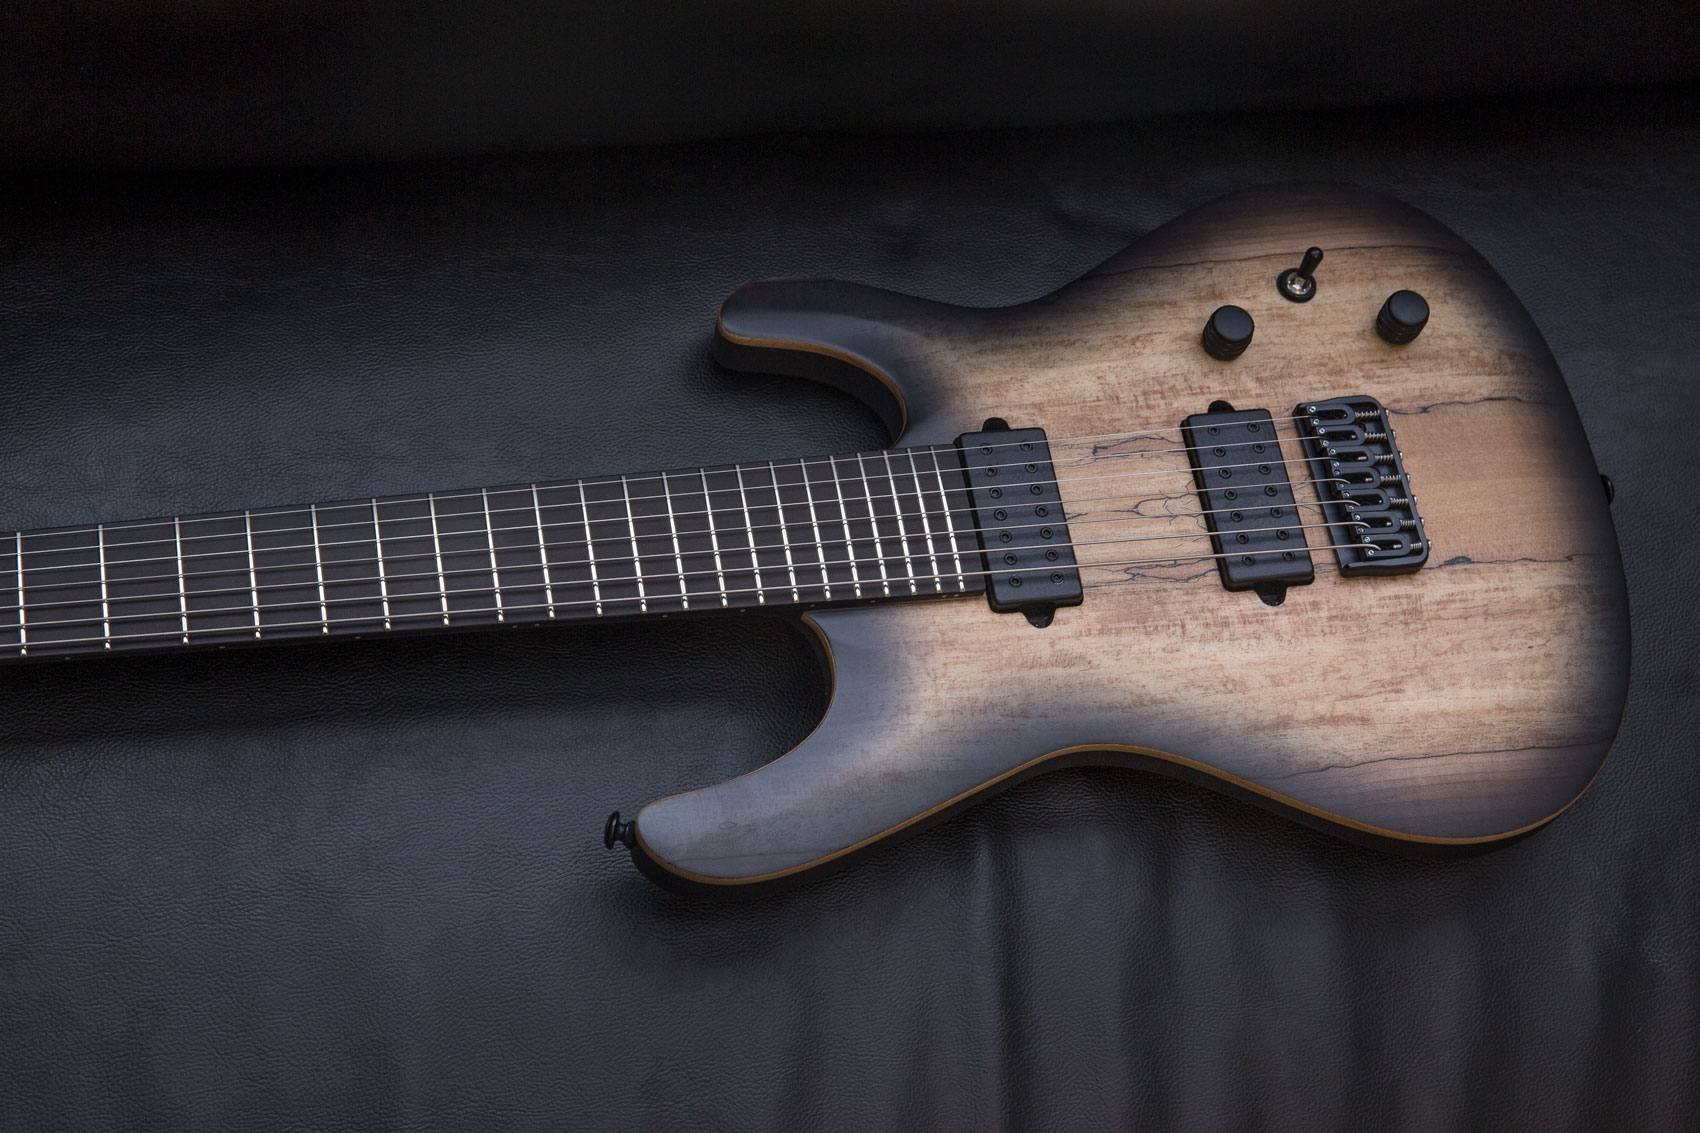 Jericho Guitars Elite 7 Natural Black Burst Satin Finish 3 Way Switch Options Dimarzio Titan String Set 1 Volume Tone Push Pull For Single Coil Voicing